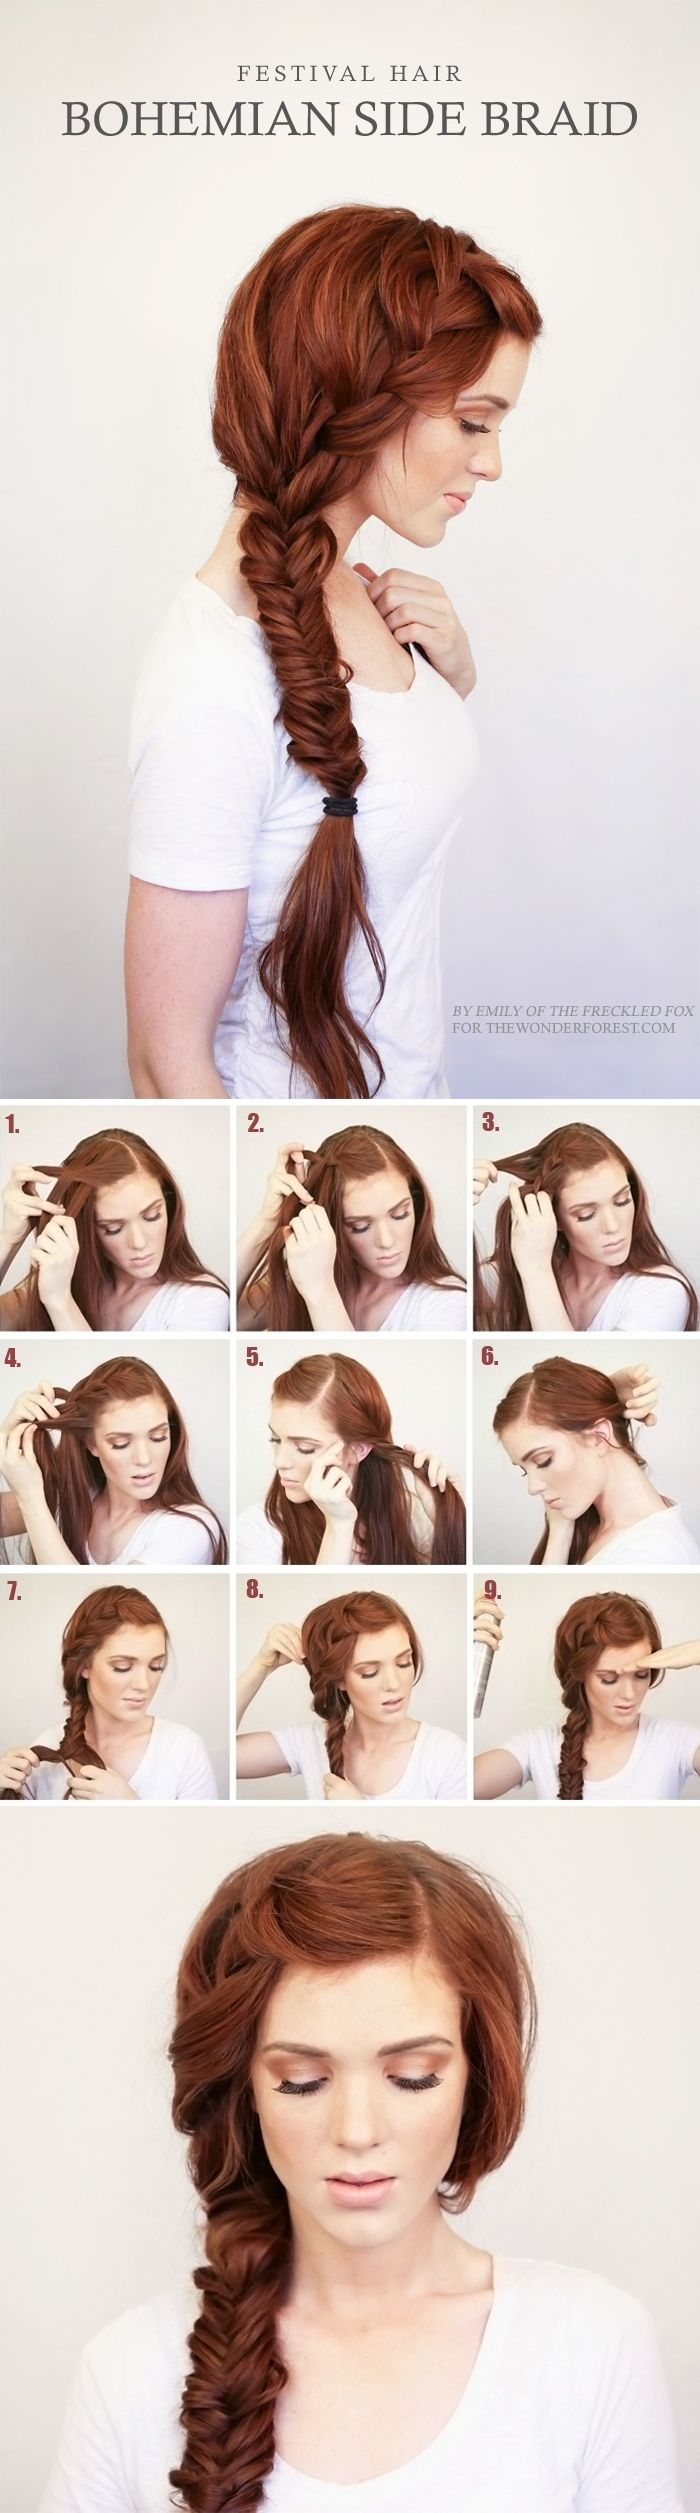 Plus De 1000 Ides Propos De Indian Hairstyles Sur Pinterest